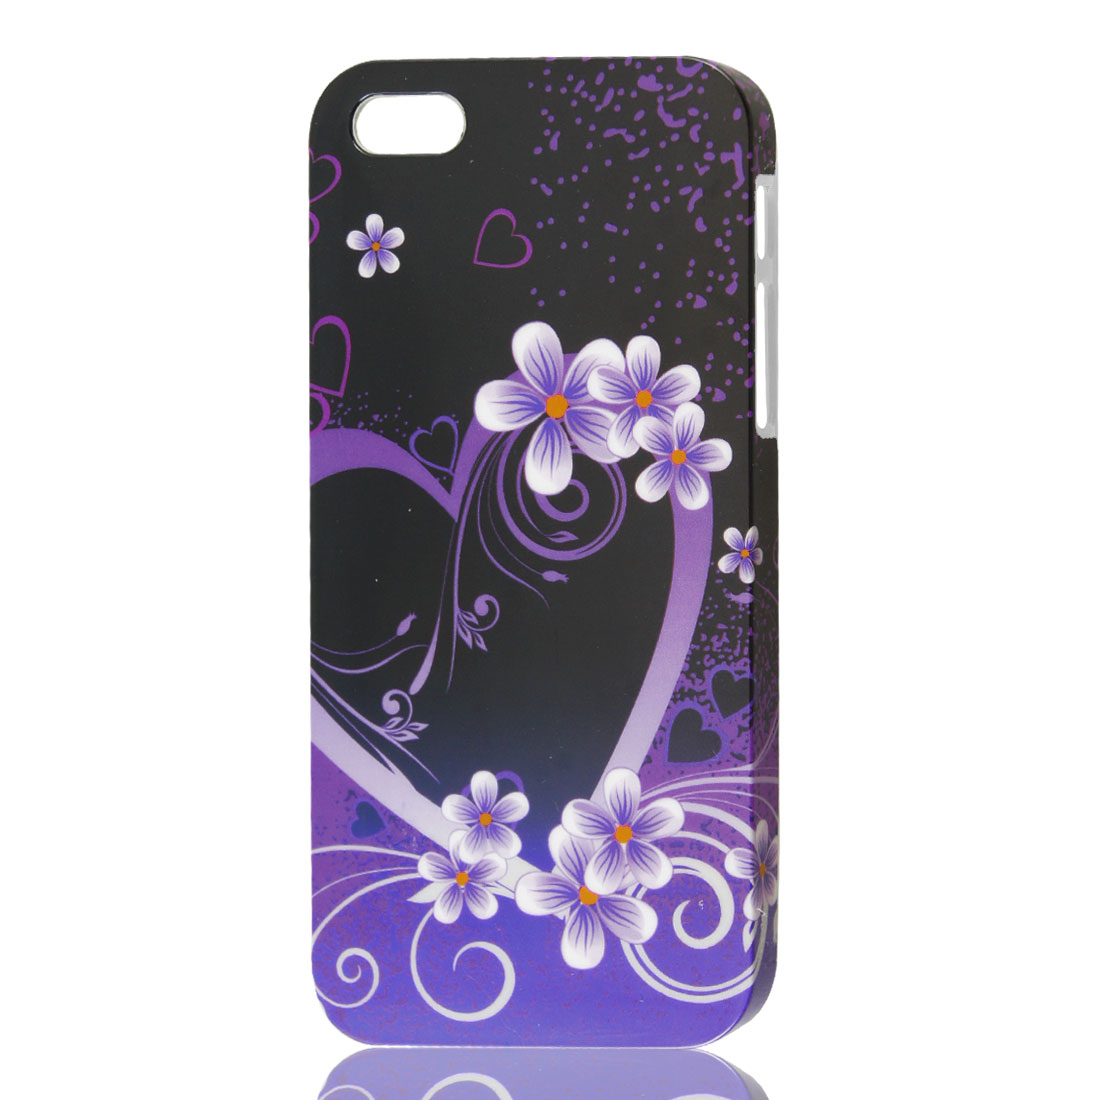 Floral Pattern Purple IMD Hard Back Case Skin Cover for iPhone 5 5G